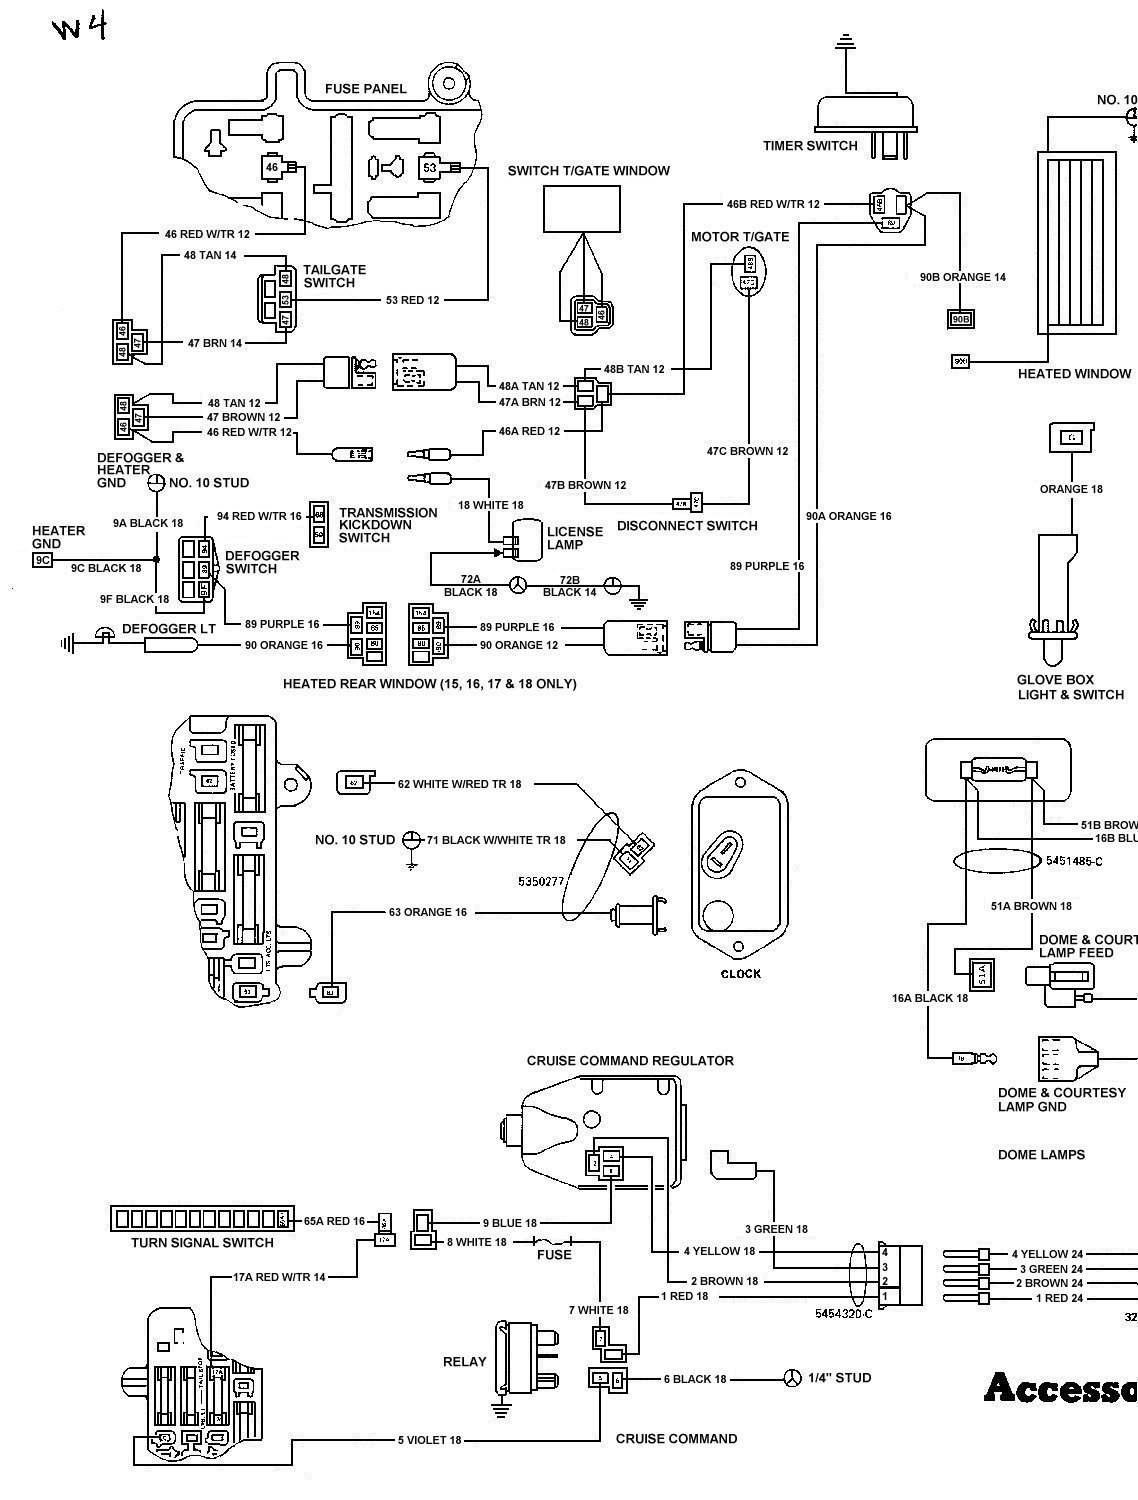 78 Cj7 Wiring Diagram - Wiring Diagram Networks